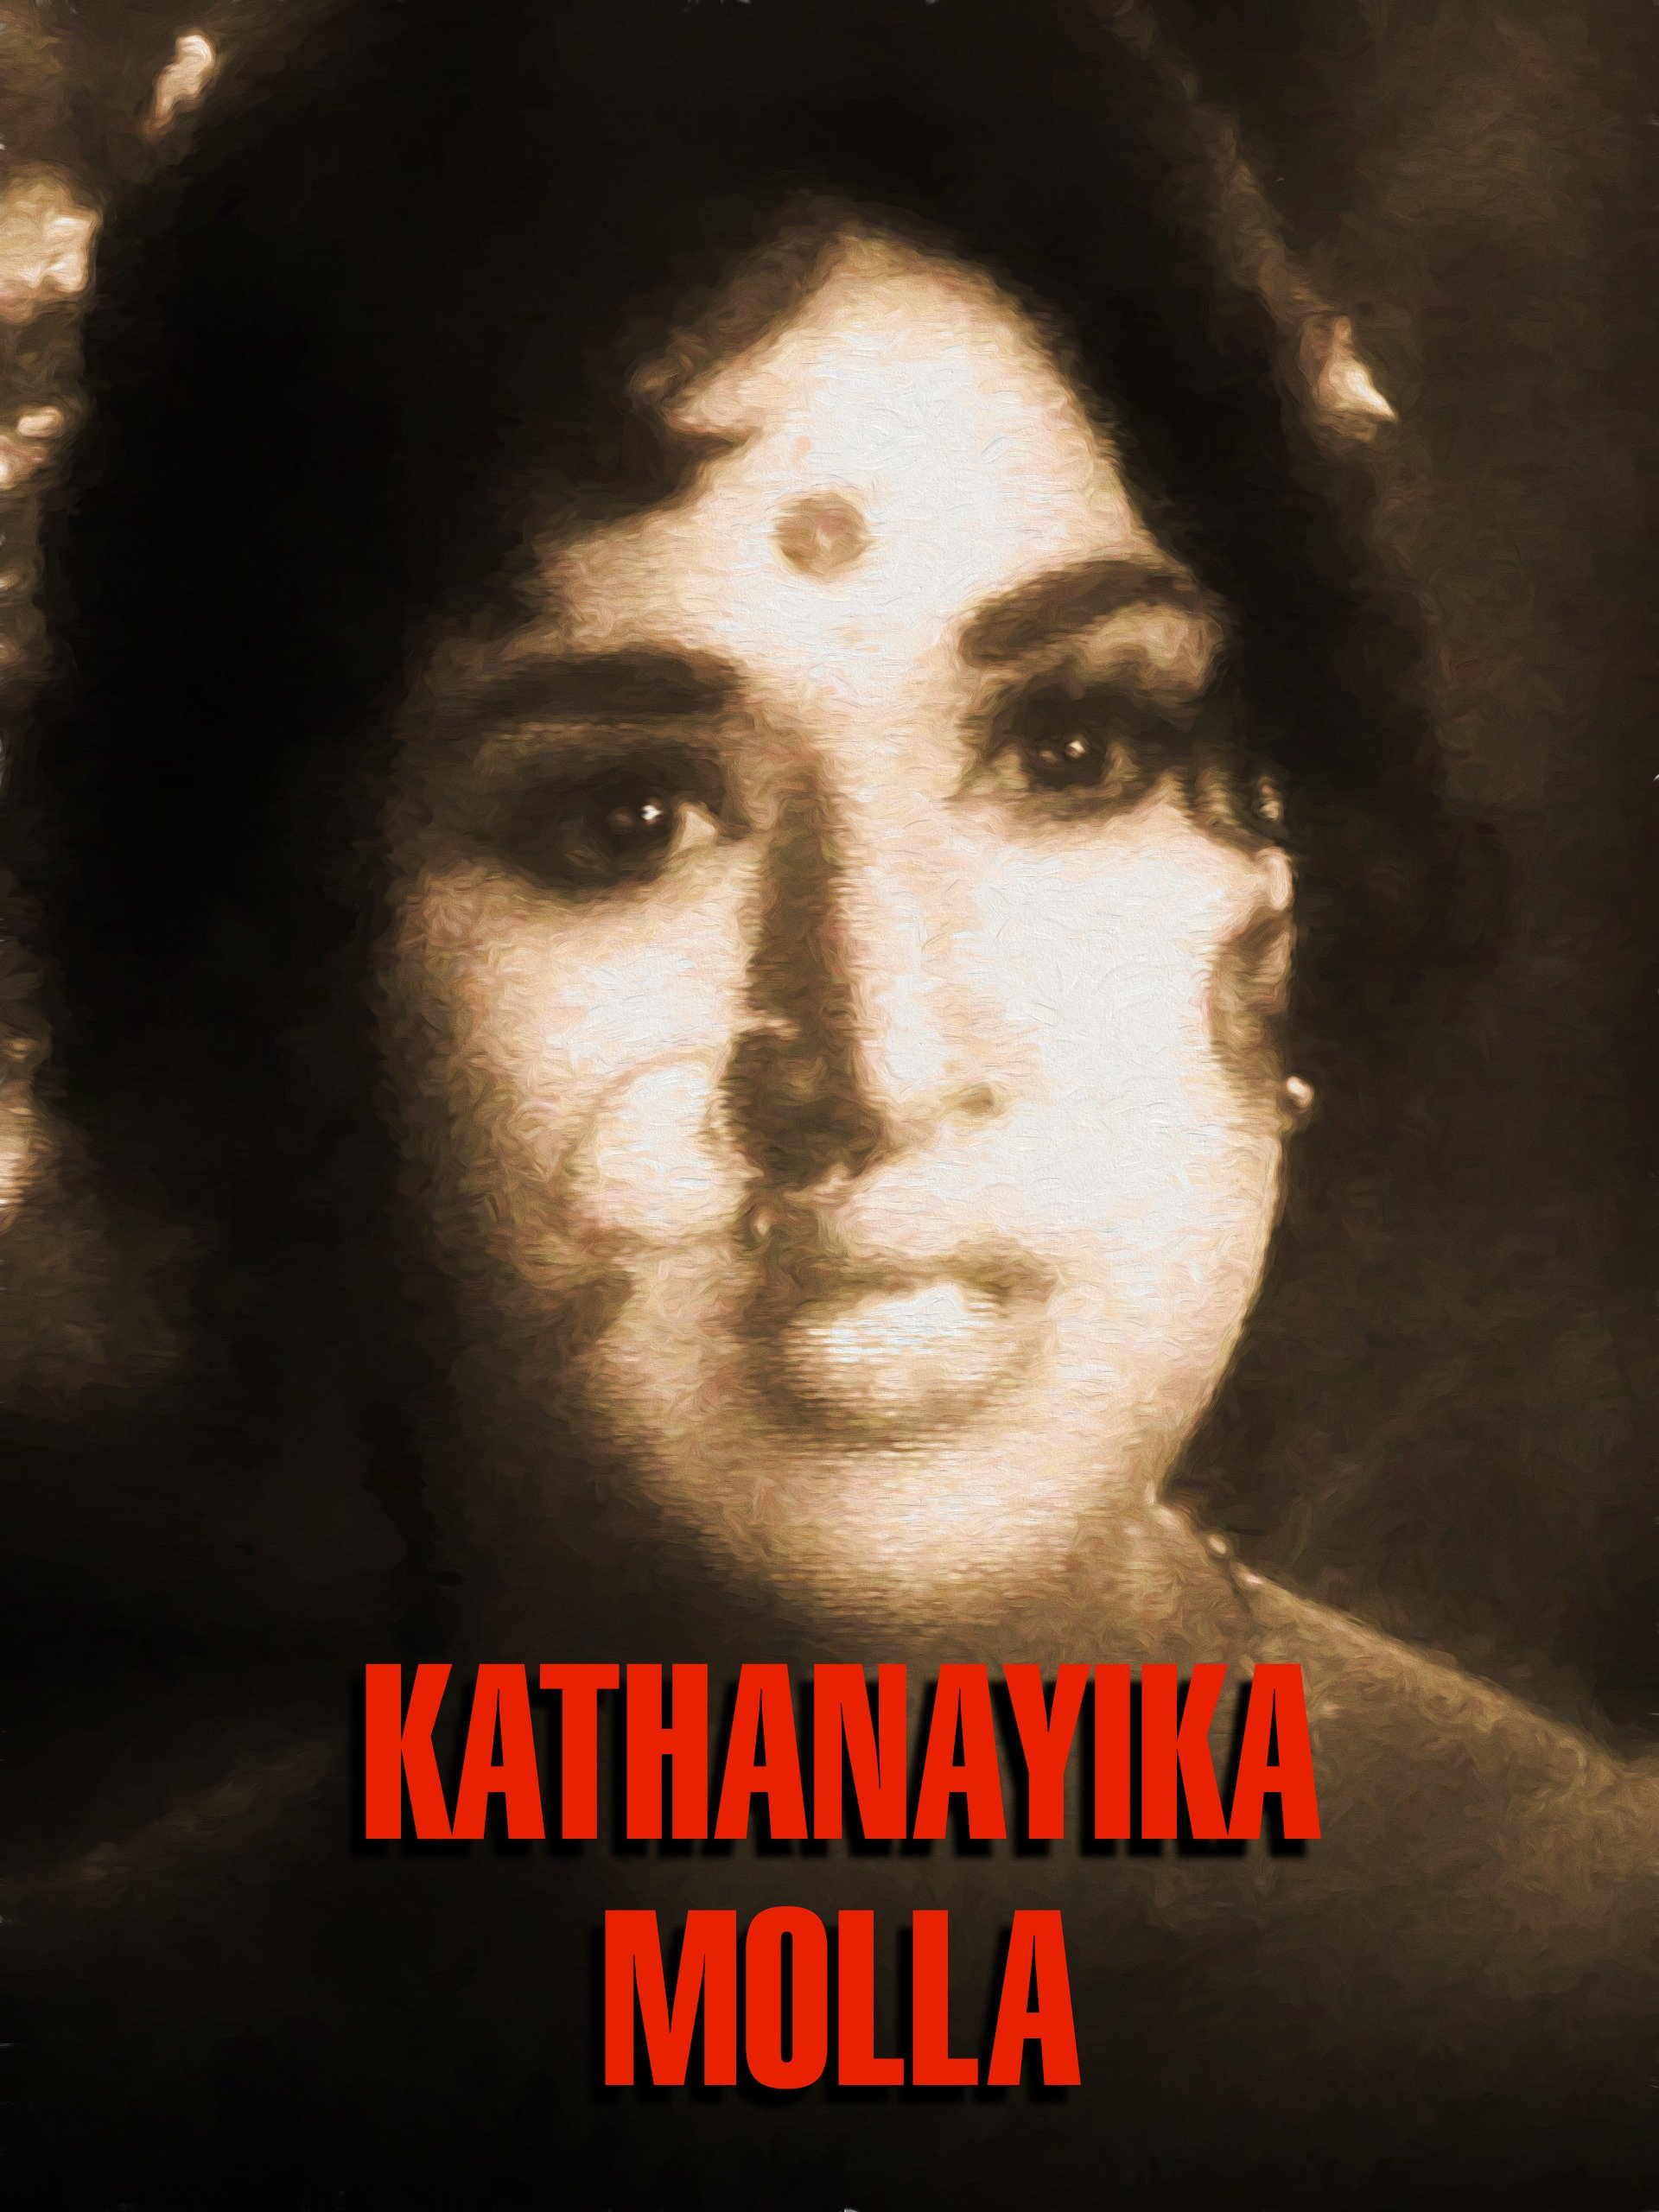 Watch Kathanayika Molla Prime Video